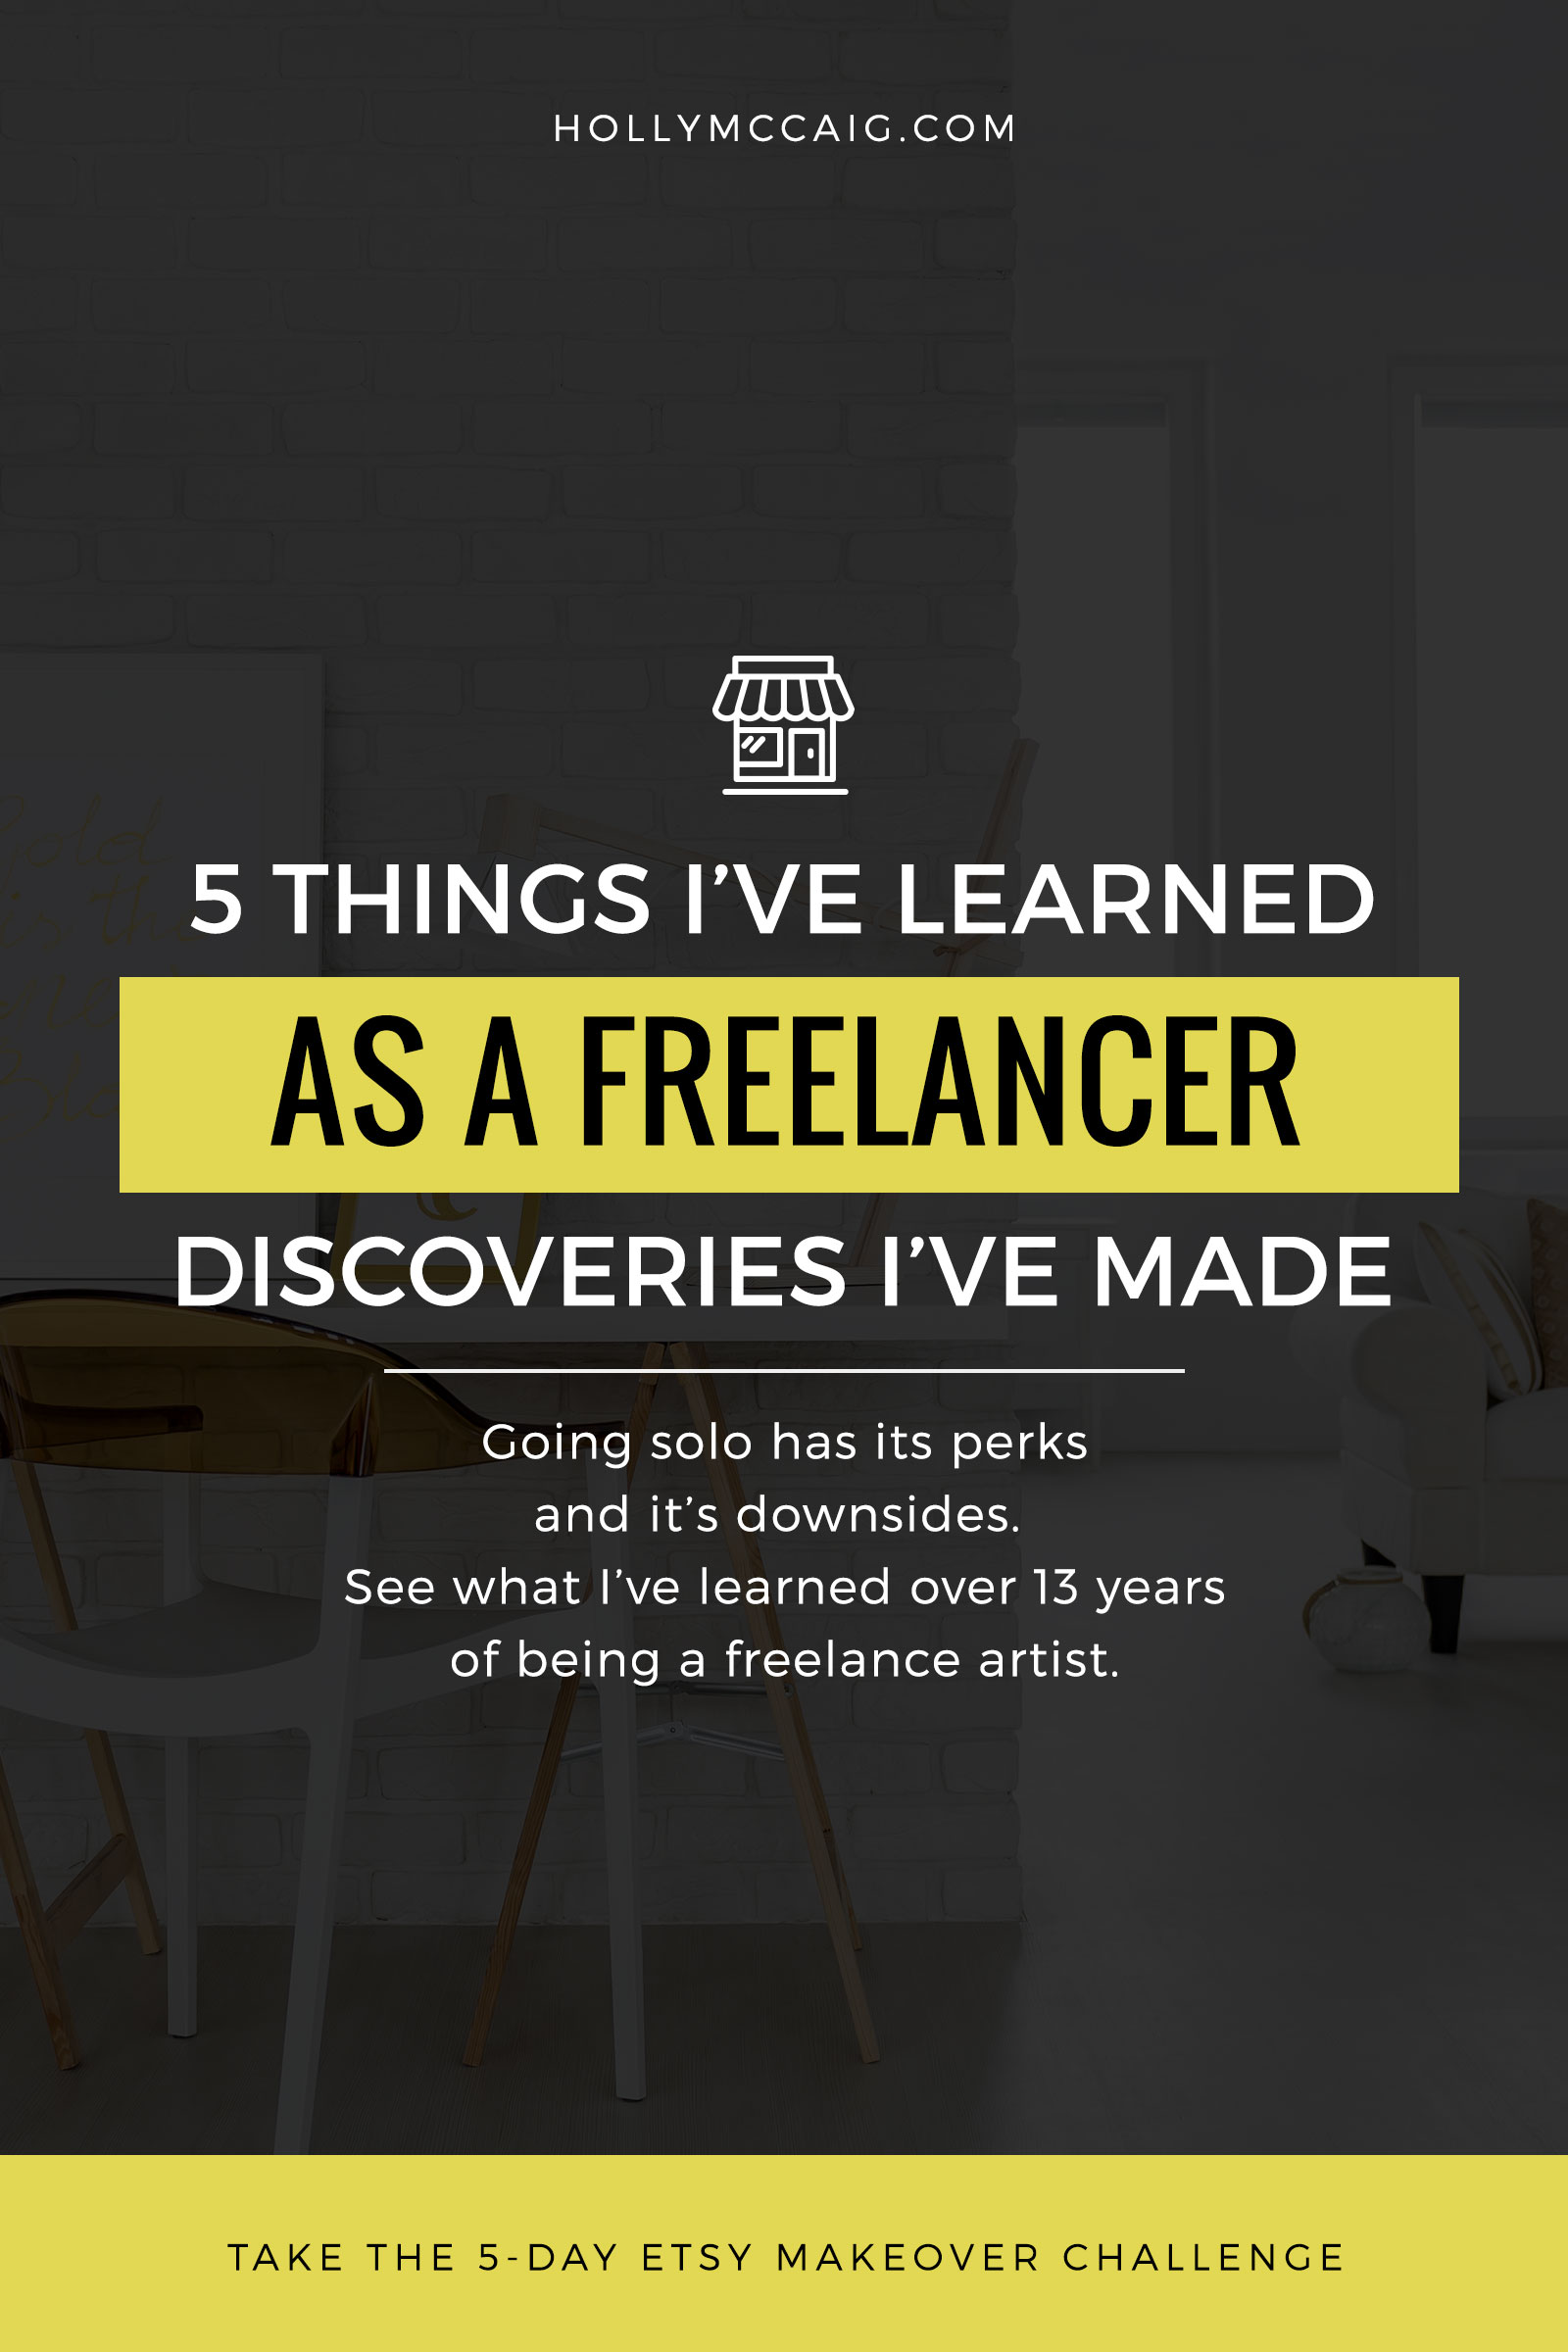 Being a self-sufficient freelancer for over 12 years has had its ups and downs. I can name 5 things I've learned as a freelancer that have helped me discover how one can succeed in this competitive business world.